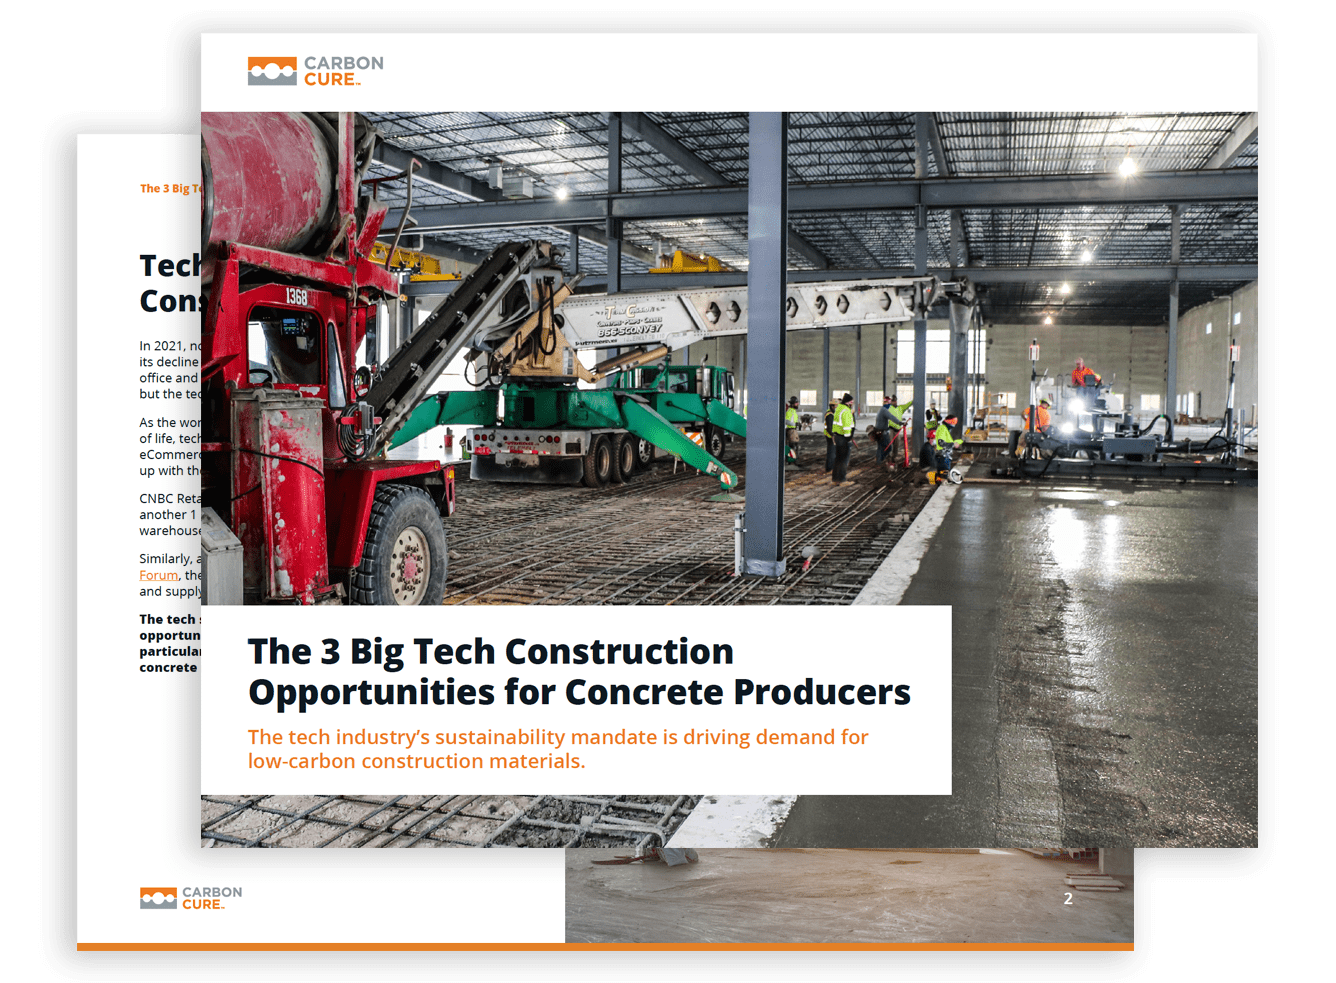 The 3 Big Tech Construction Opportunities for Concrete Producers